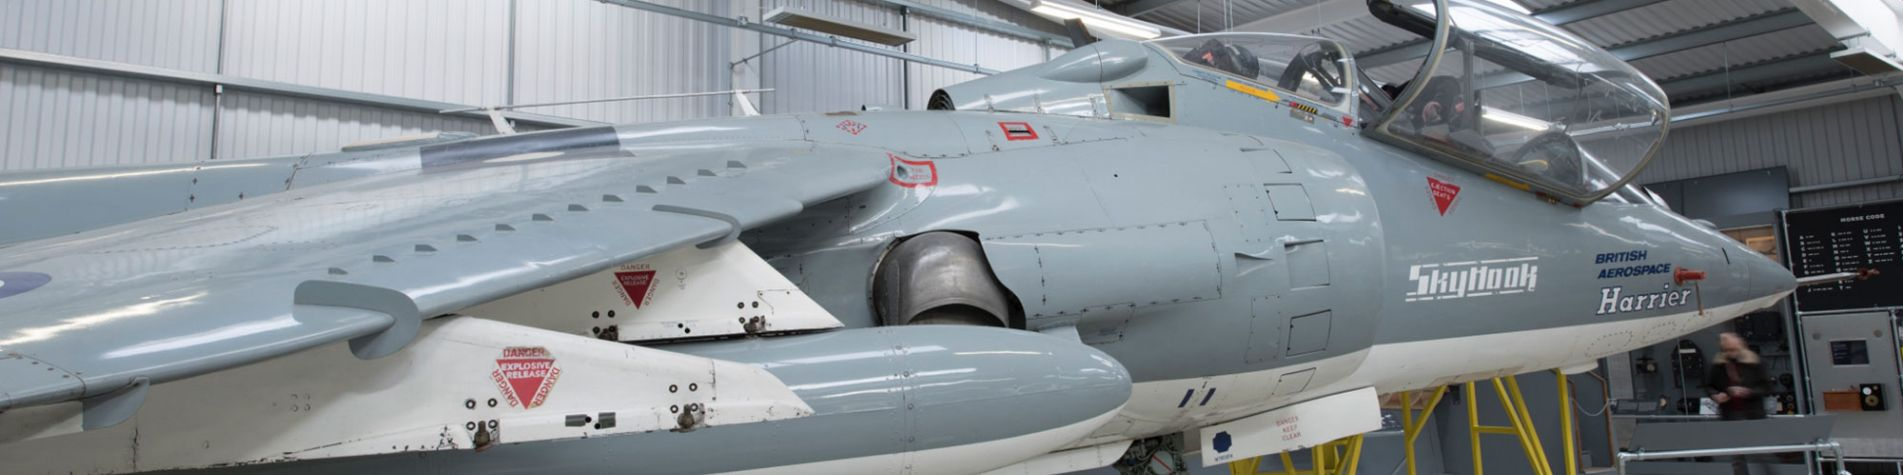 flight-shed-header-harrier.jpg